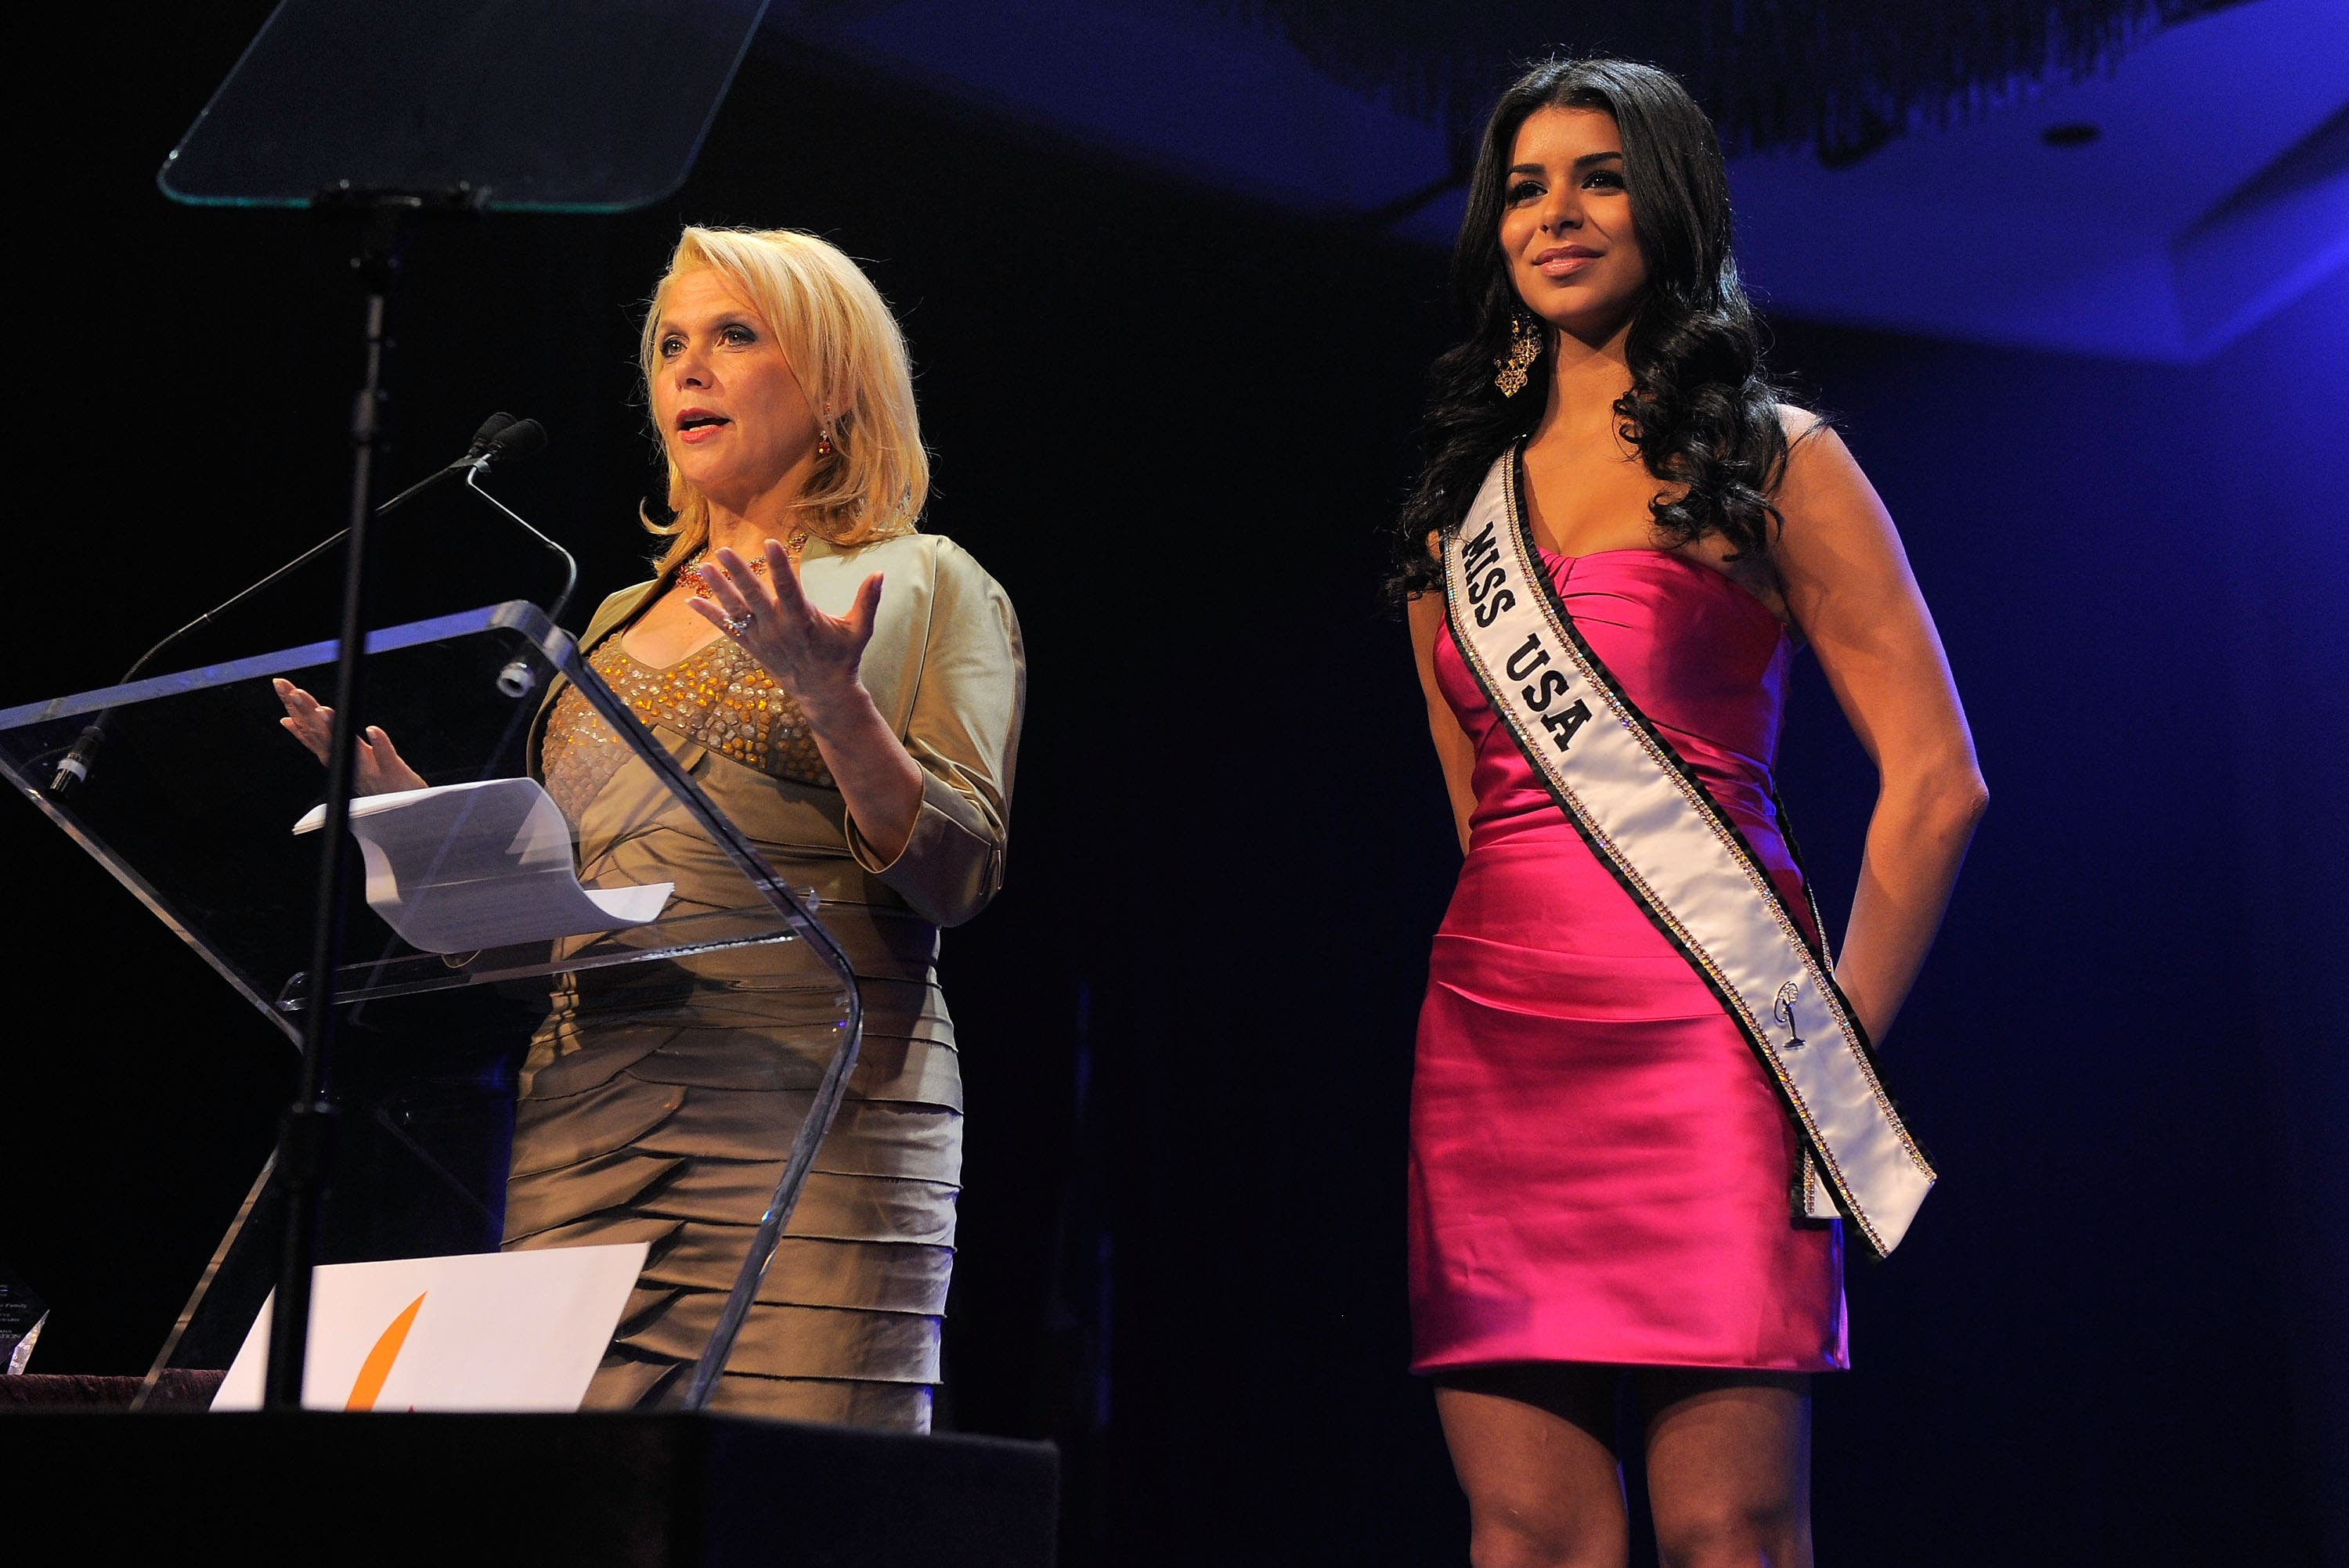 Miss USA 2010, Rima Fakih, is of Lebanese background